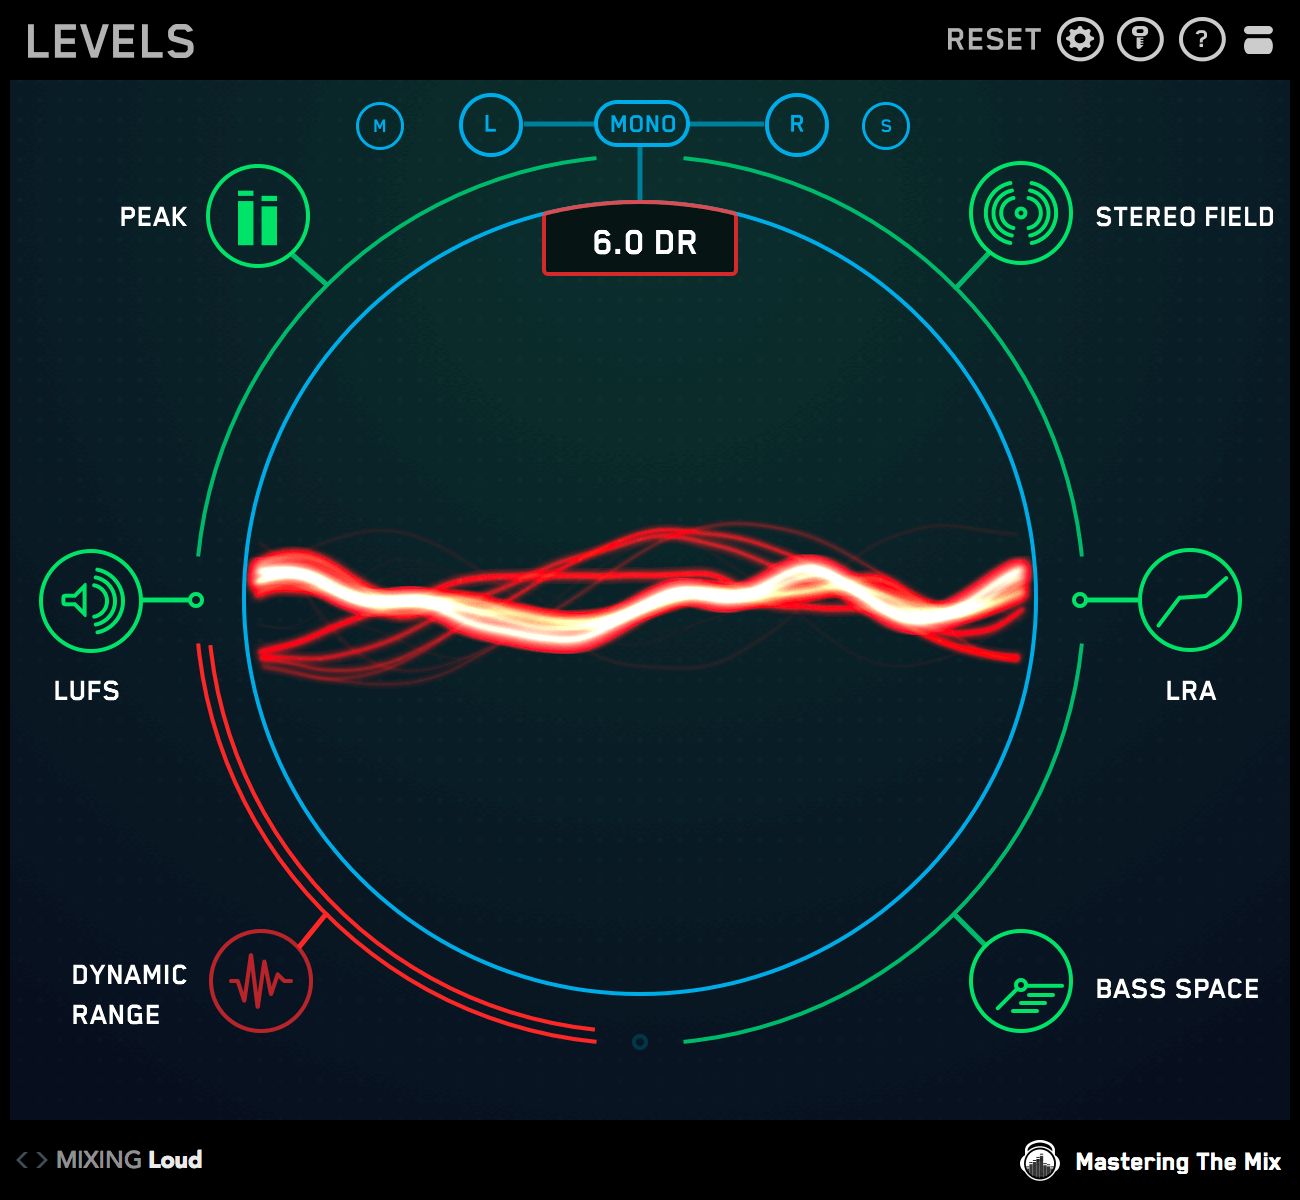 LEVELS helps you monitor the punch of your mix